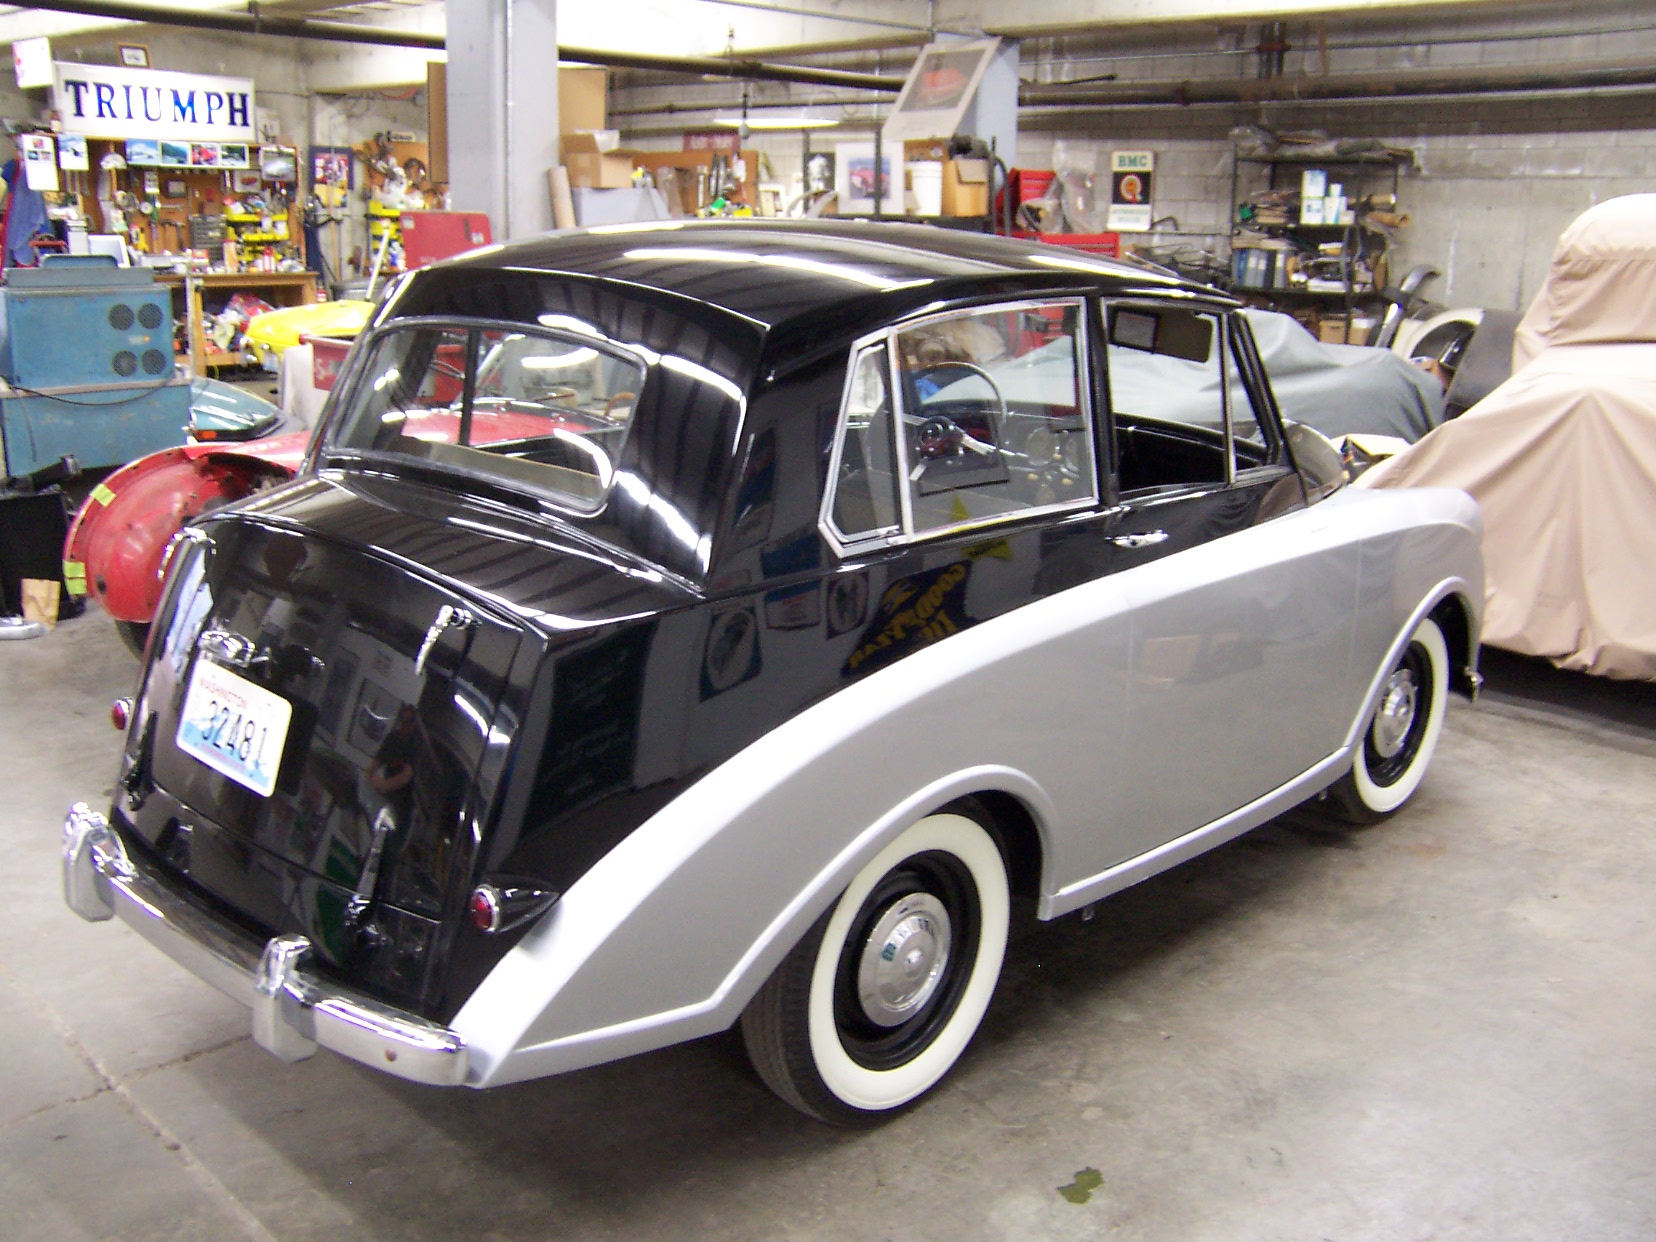 1953 Triumph Mayflower « Britsport of Seattle